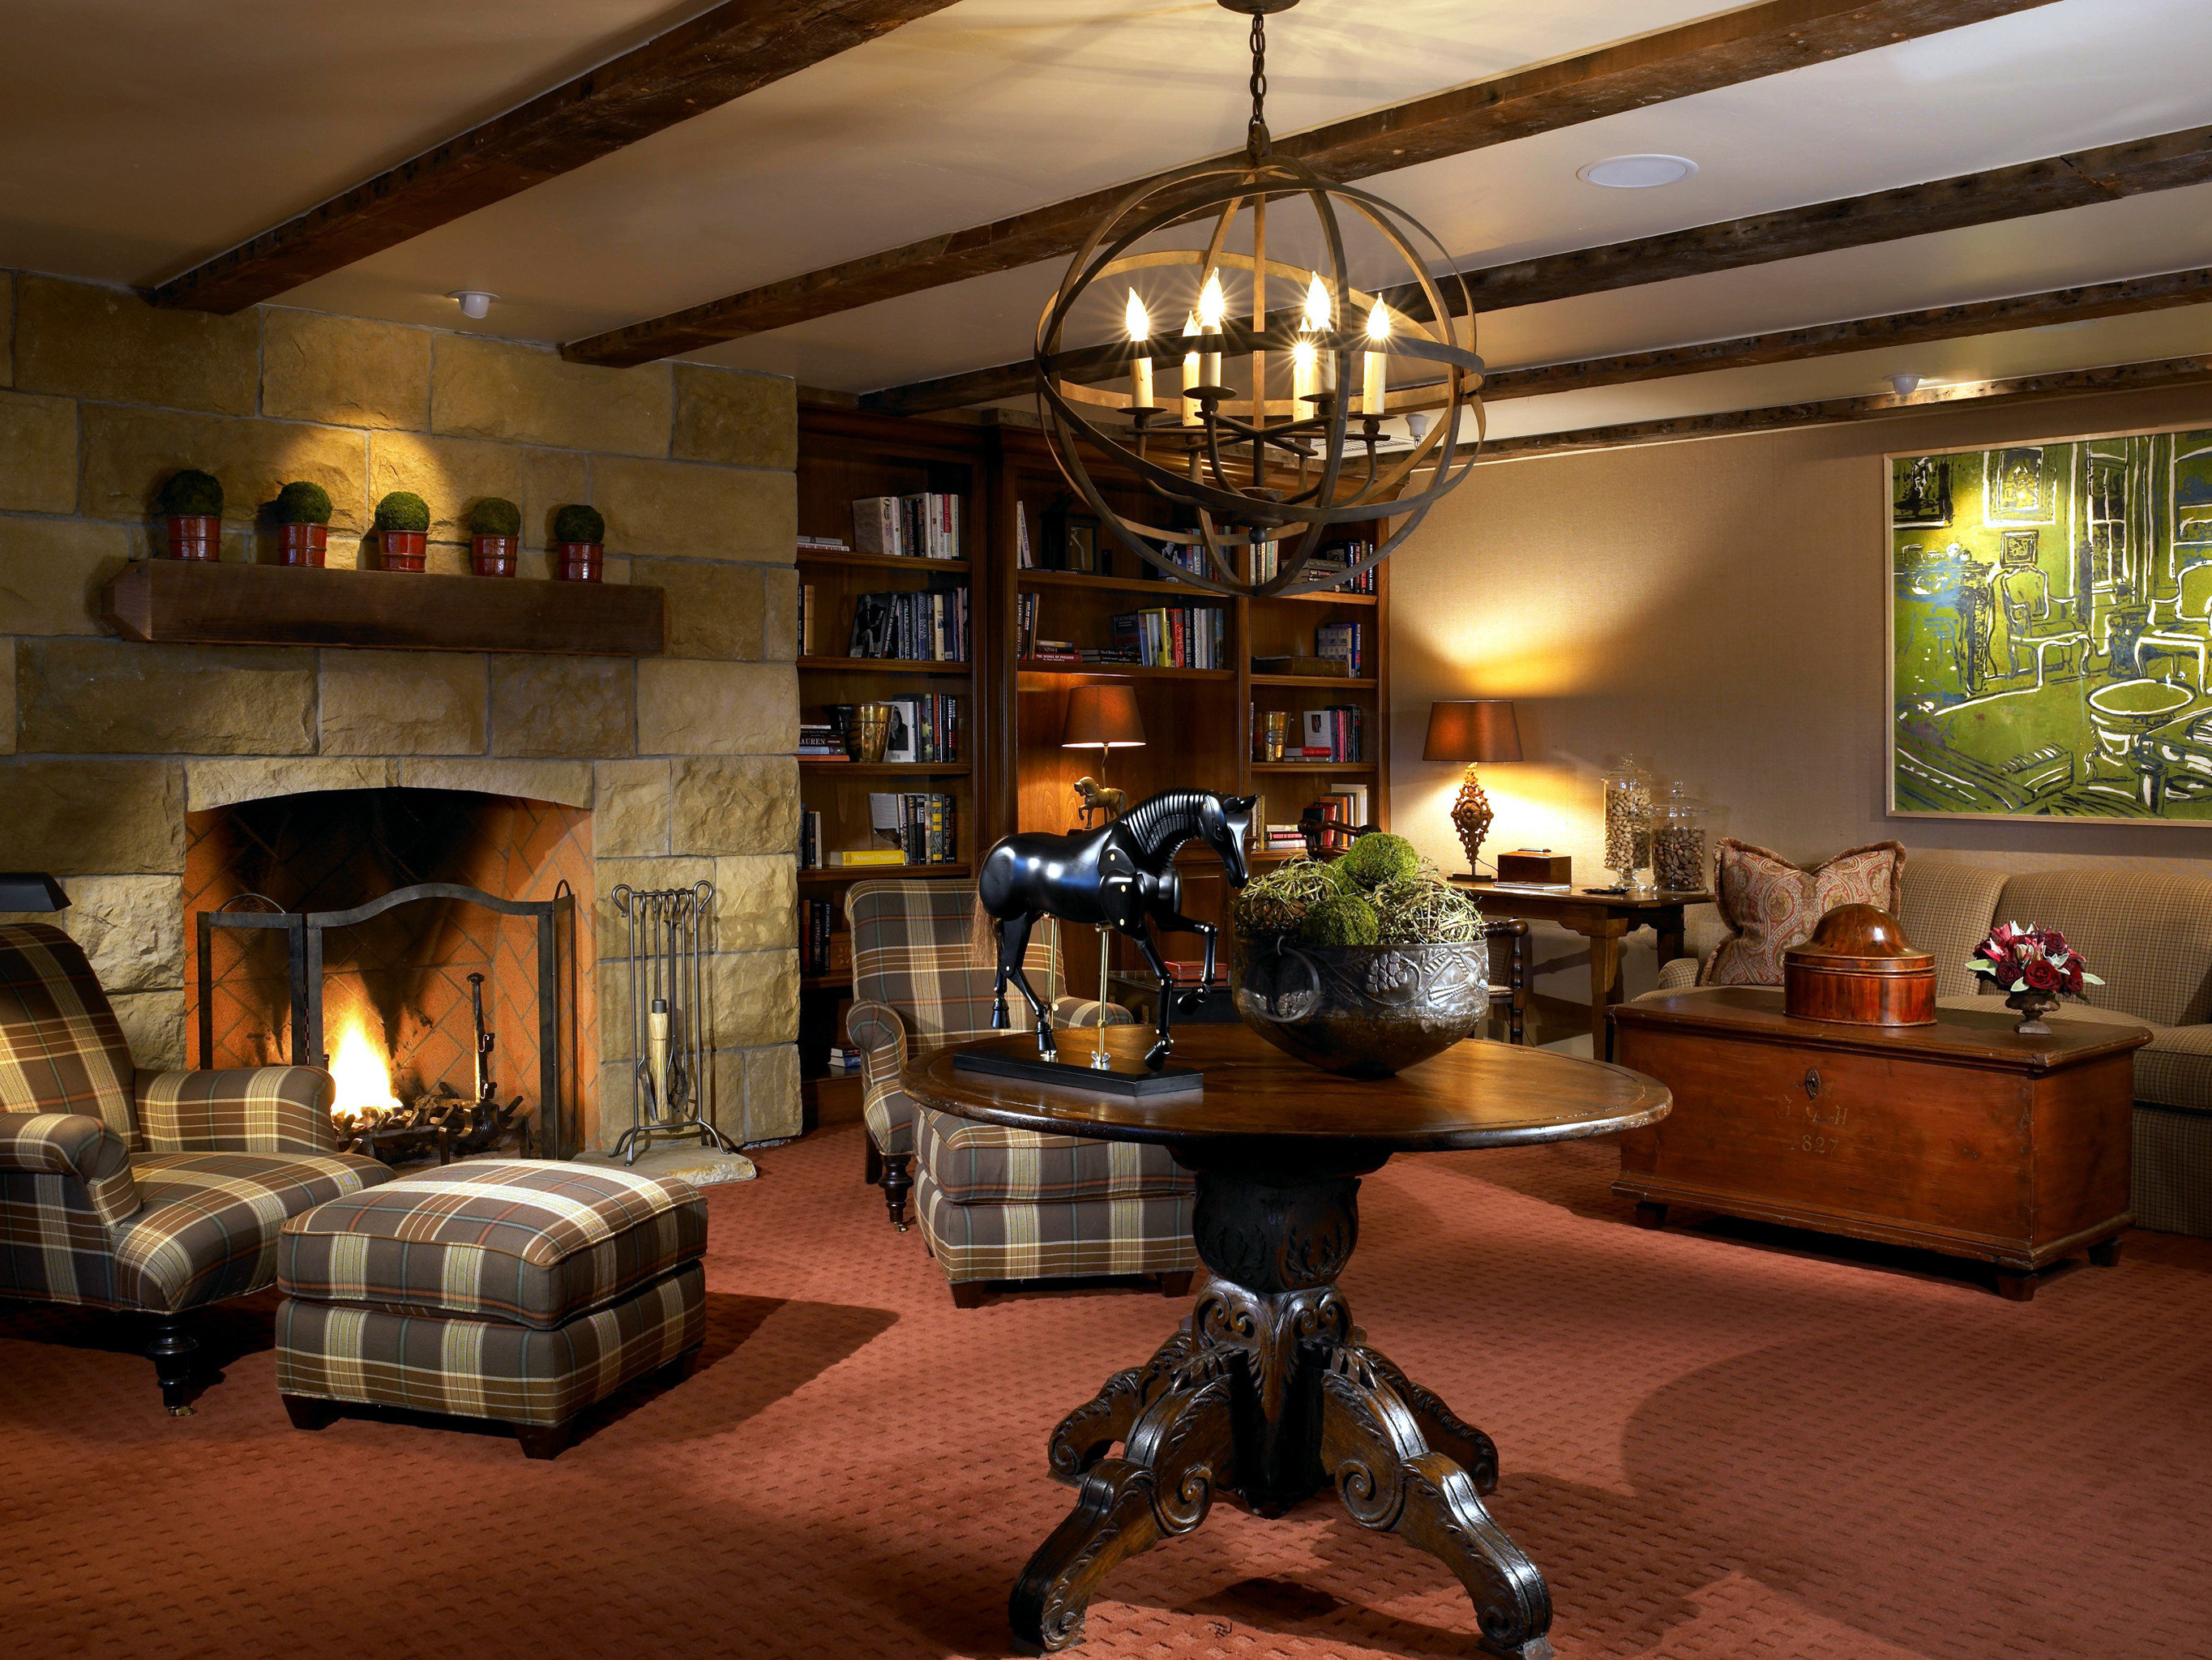 B&B Boutique Fireplace Inn Lounge property living room home lighting recreation room Lobby mansion